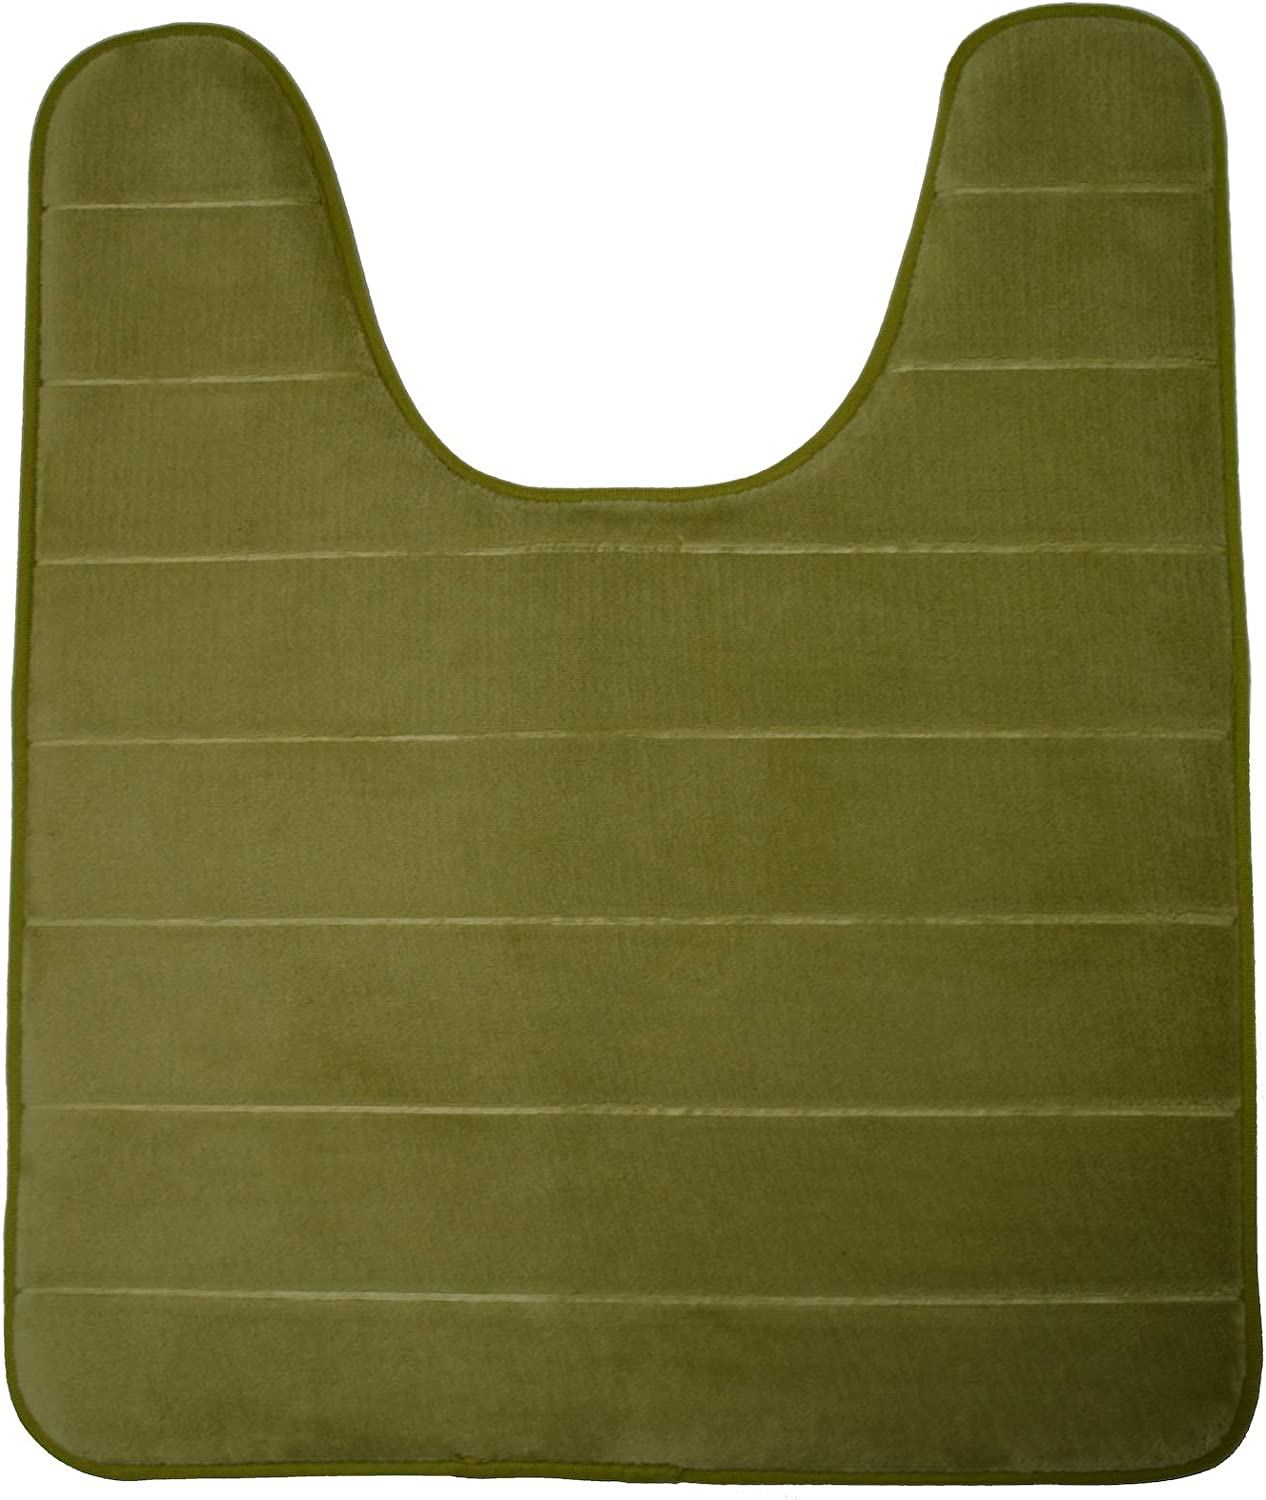 Sage Green Memory Foam Toilet Super-cheap New popularity and Bathroom Soft Comfortable Mat